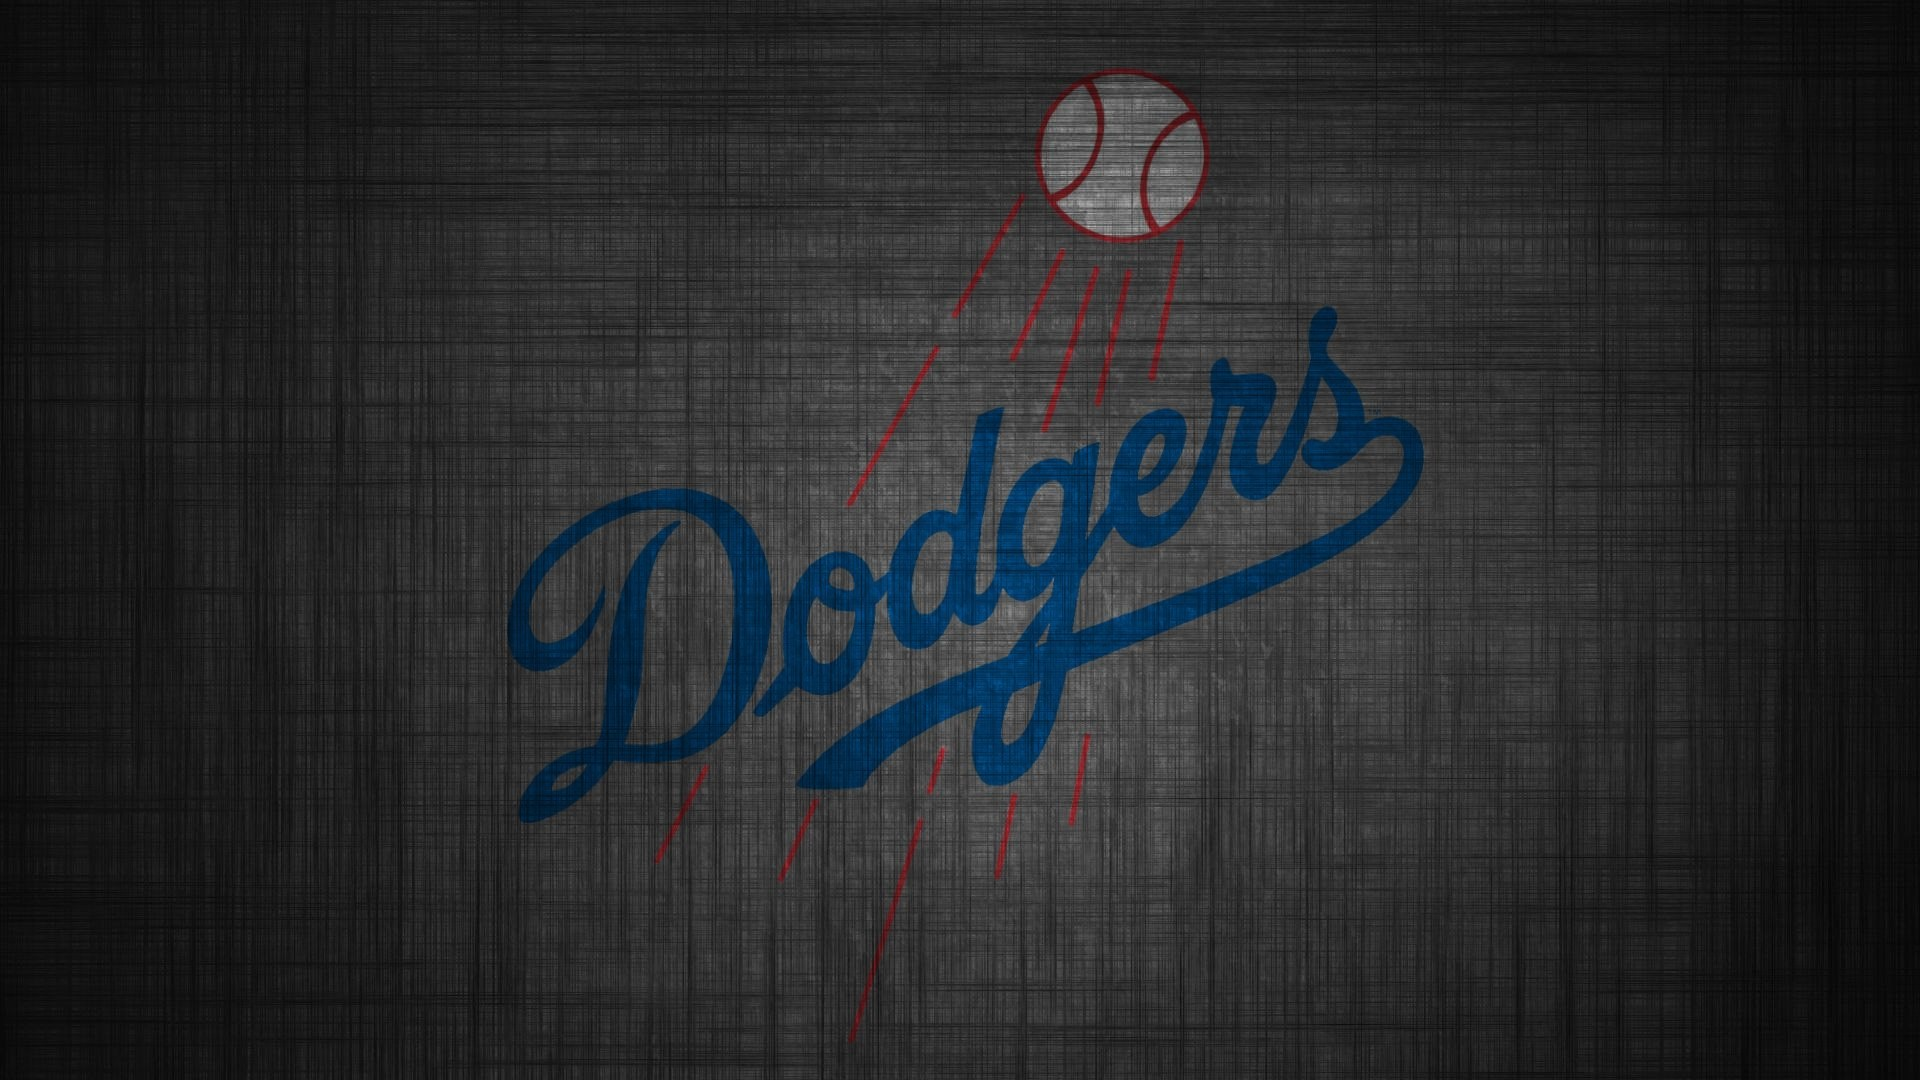 dodgers-pic-free-1920-x-1080-kB-wallpaper-wp3604897